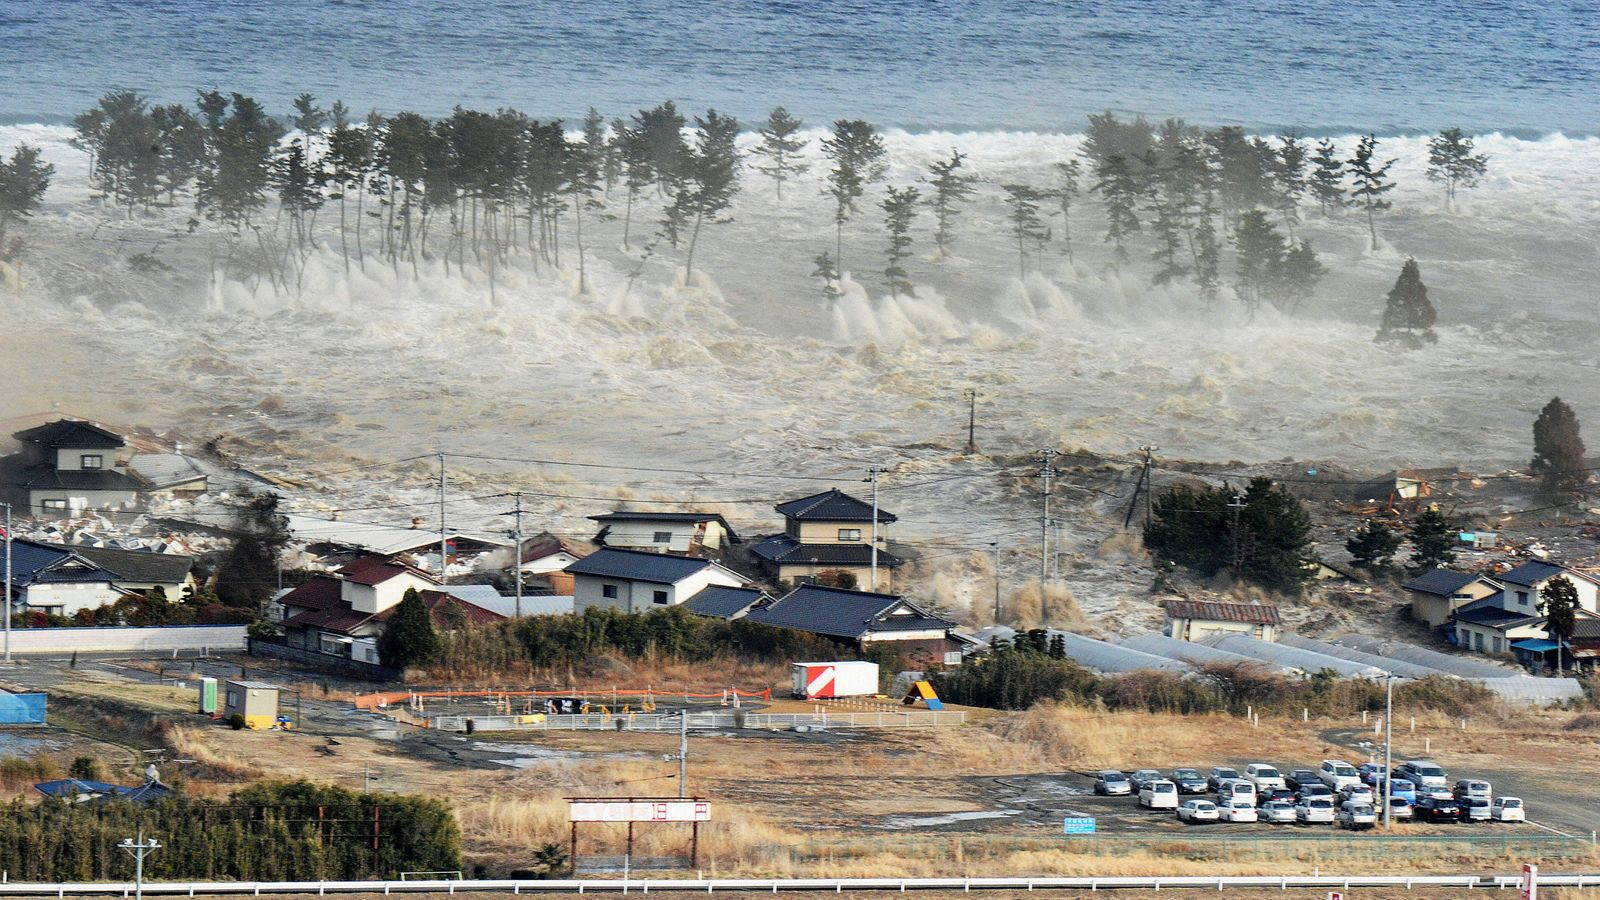 Japan tsunami: Ceremony held to remember deaths and devastation caused by huge quake 10 years ago